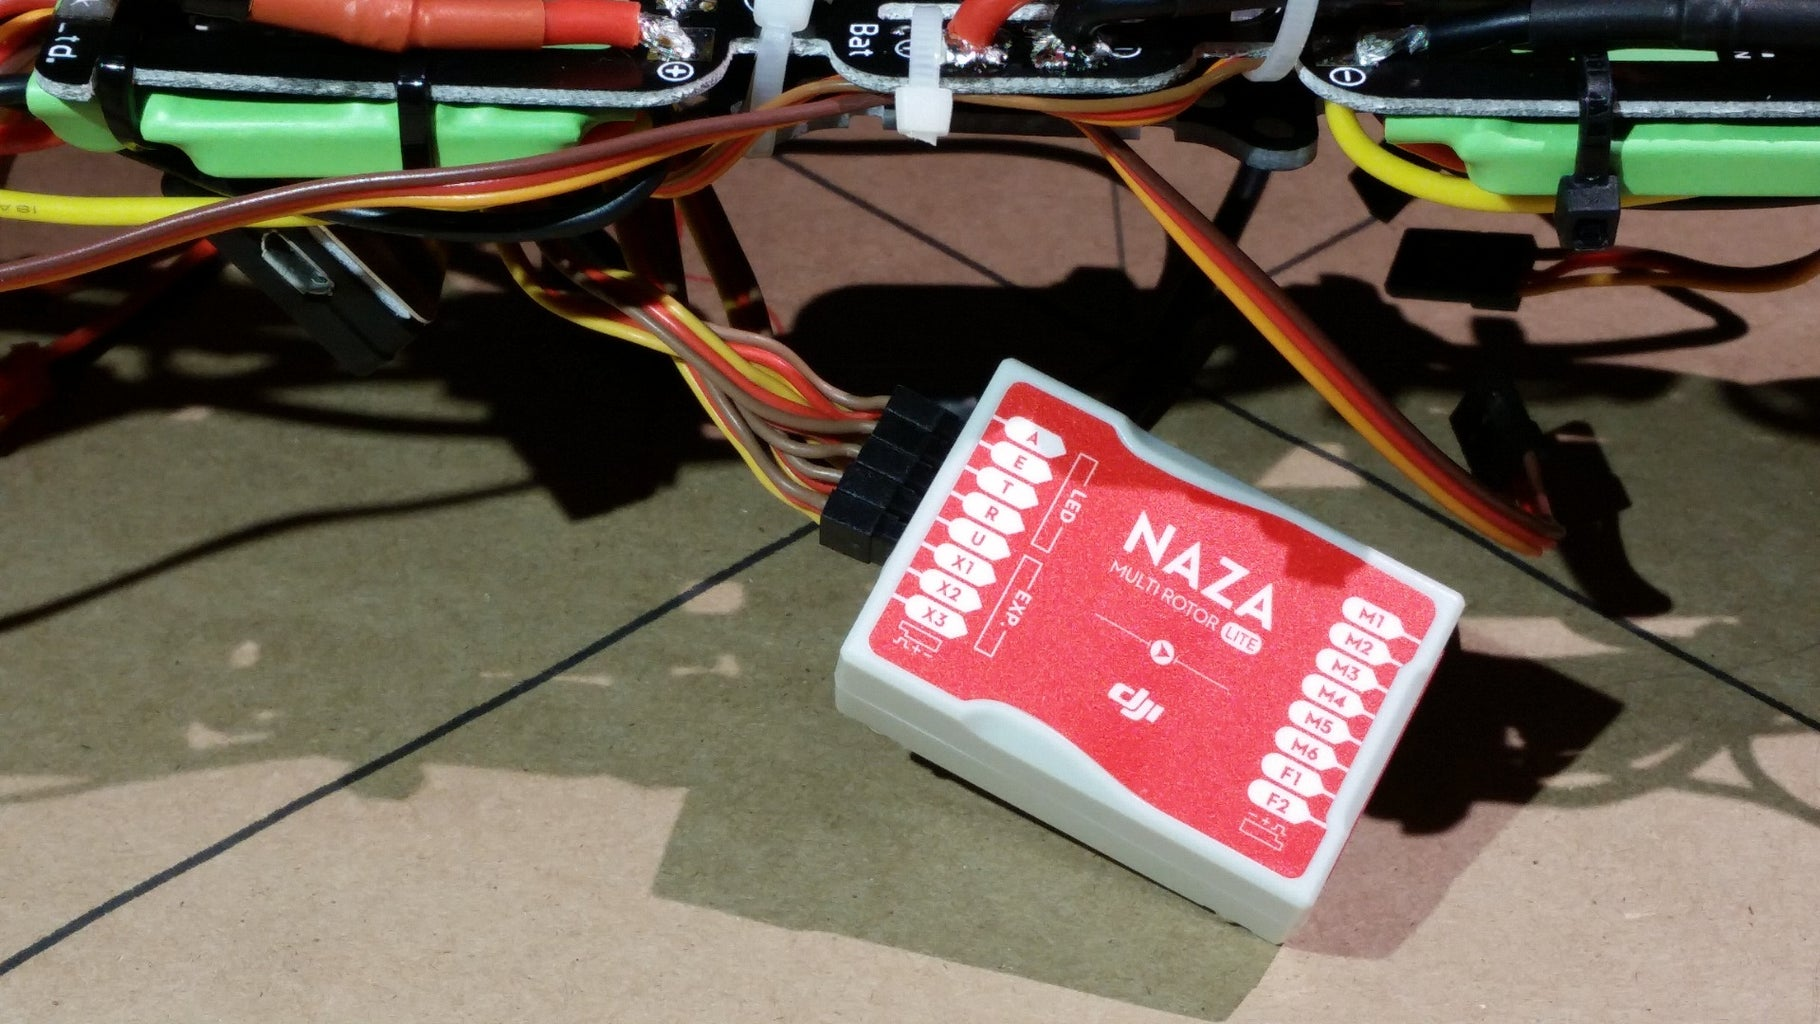 Connect the Radio Receiver to the Flight Controller